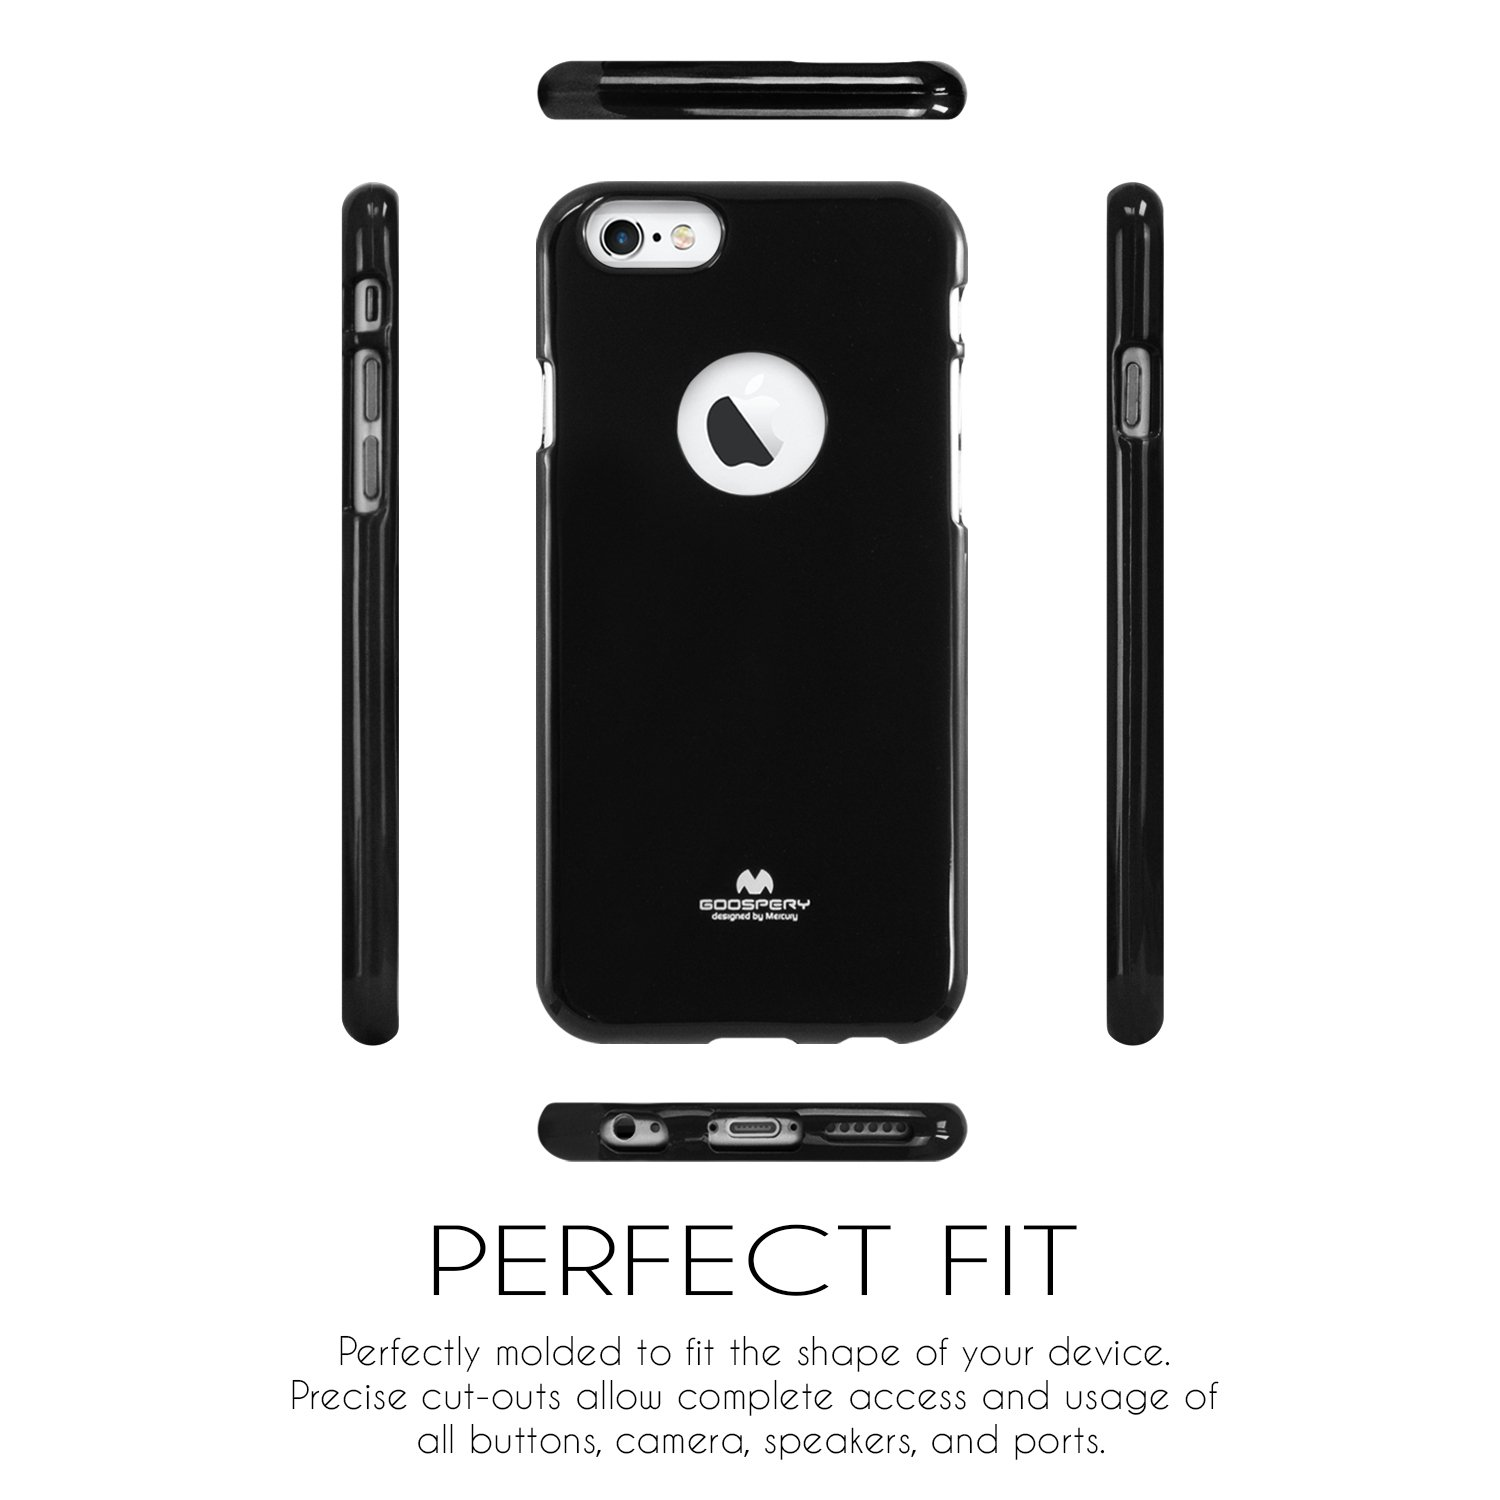 Iphone 6 Plus Case 6s Thin Slim Goospery Pearl Jelly Black Flexible Color Rubber Tpu Lightweight Bumper Cover